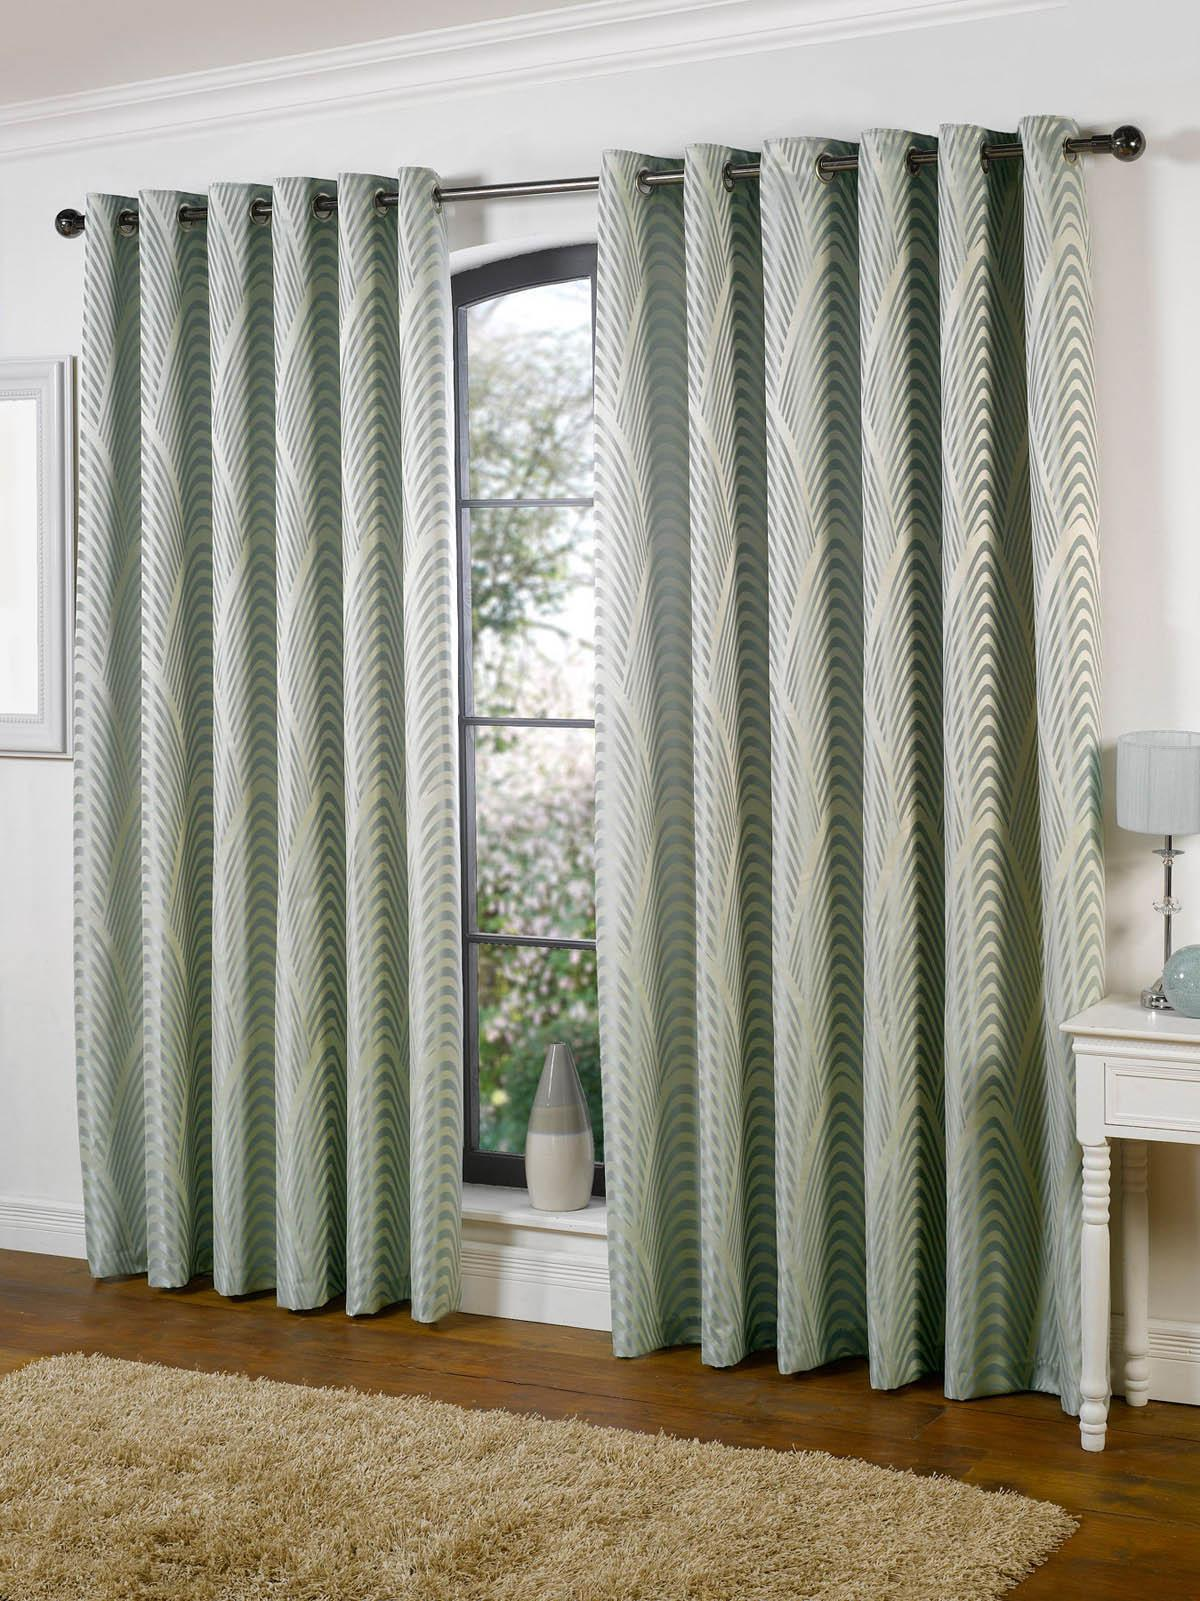 Texcraft Ready Made Curtains Dakota Lined Eyelet Ready Made Curtains Duck Egg